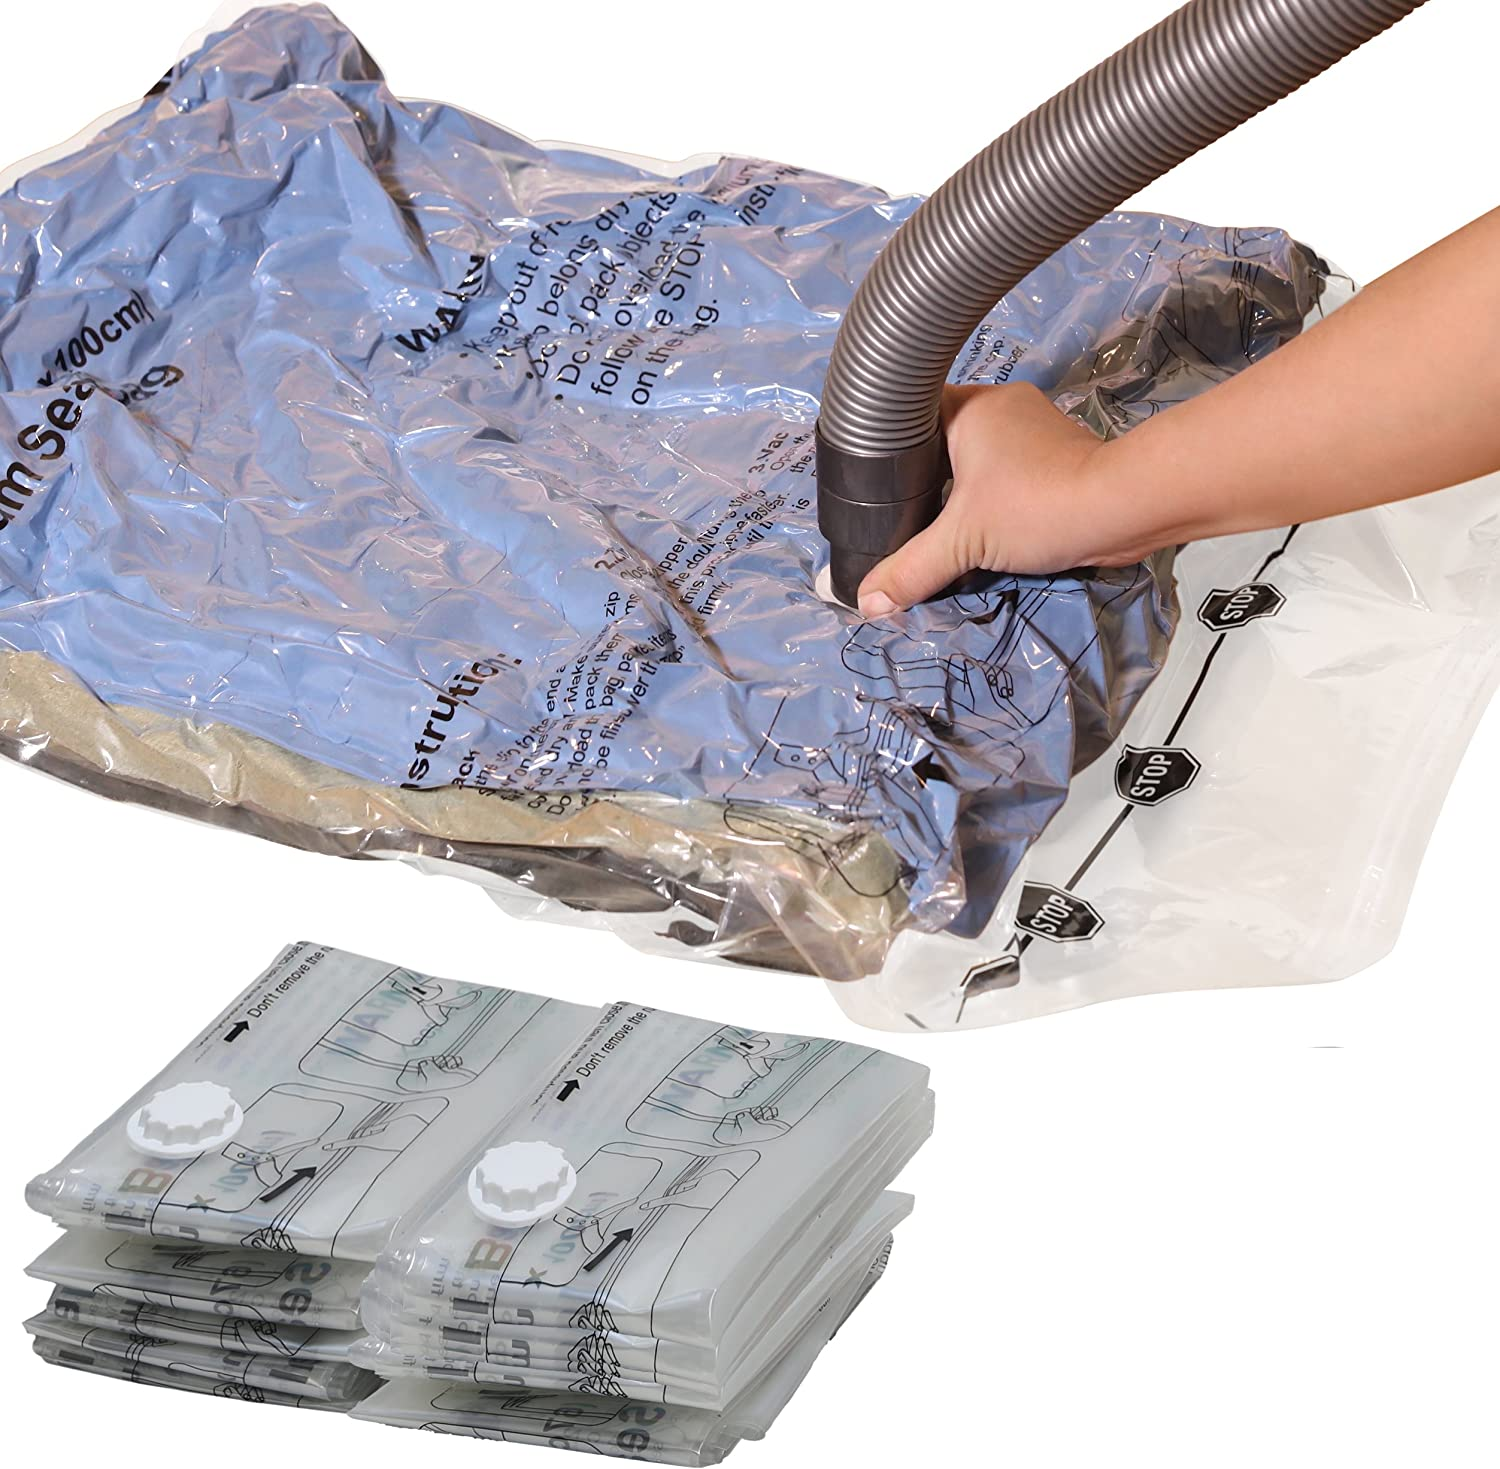 5Extra Simple Houseware V 15 Vacuum Storage Space Saver for Bedding Clothes Bags 4Large 4Medium Pack-2Jumbo 2 x Jumbo, 5 x Extra Large, 4 x Medium Pillows Blanket Towel Clear